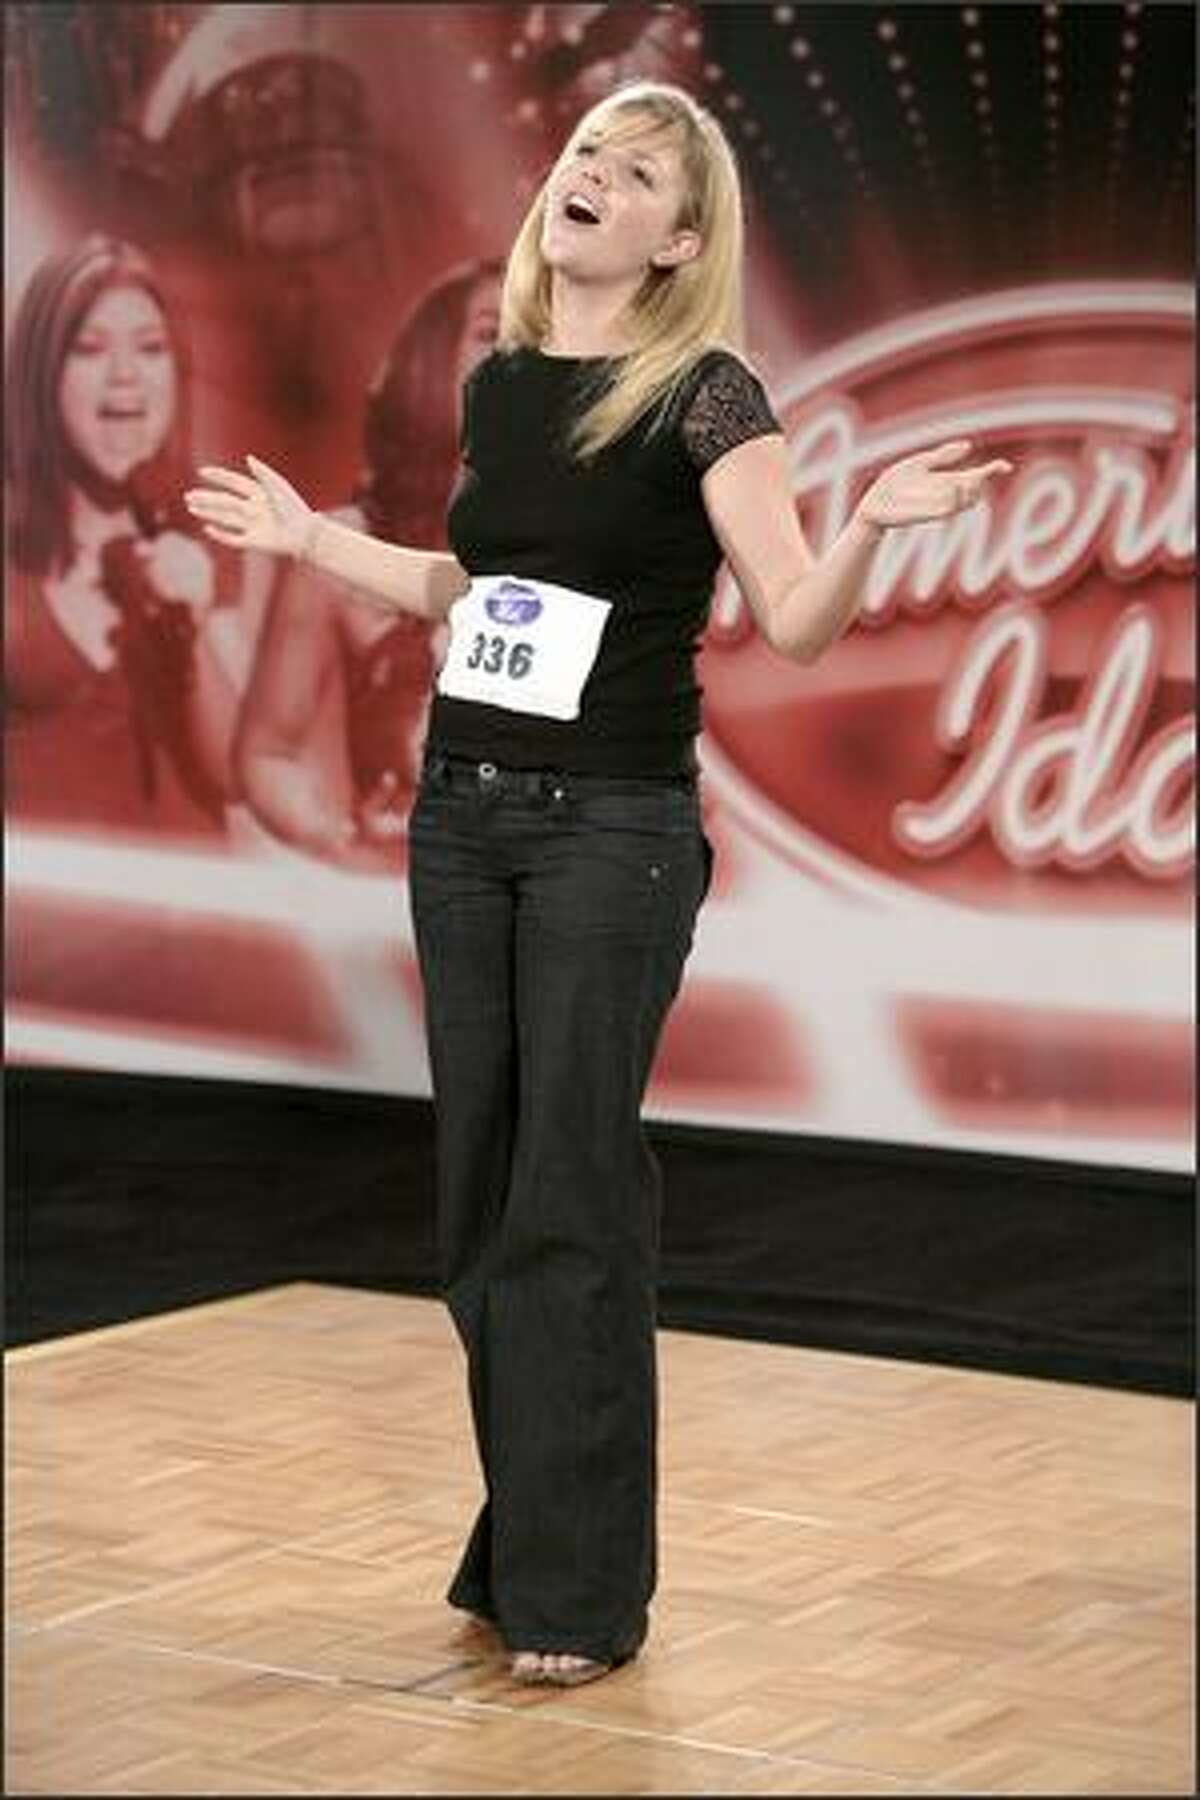 San Diego audition, July 30, 2007: Courtney Blooding, 27, of Encino, Calif.